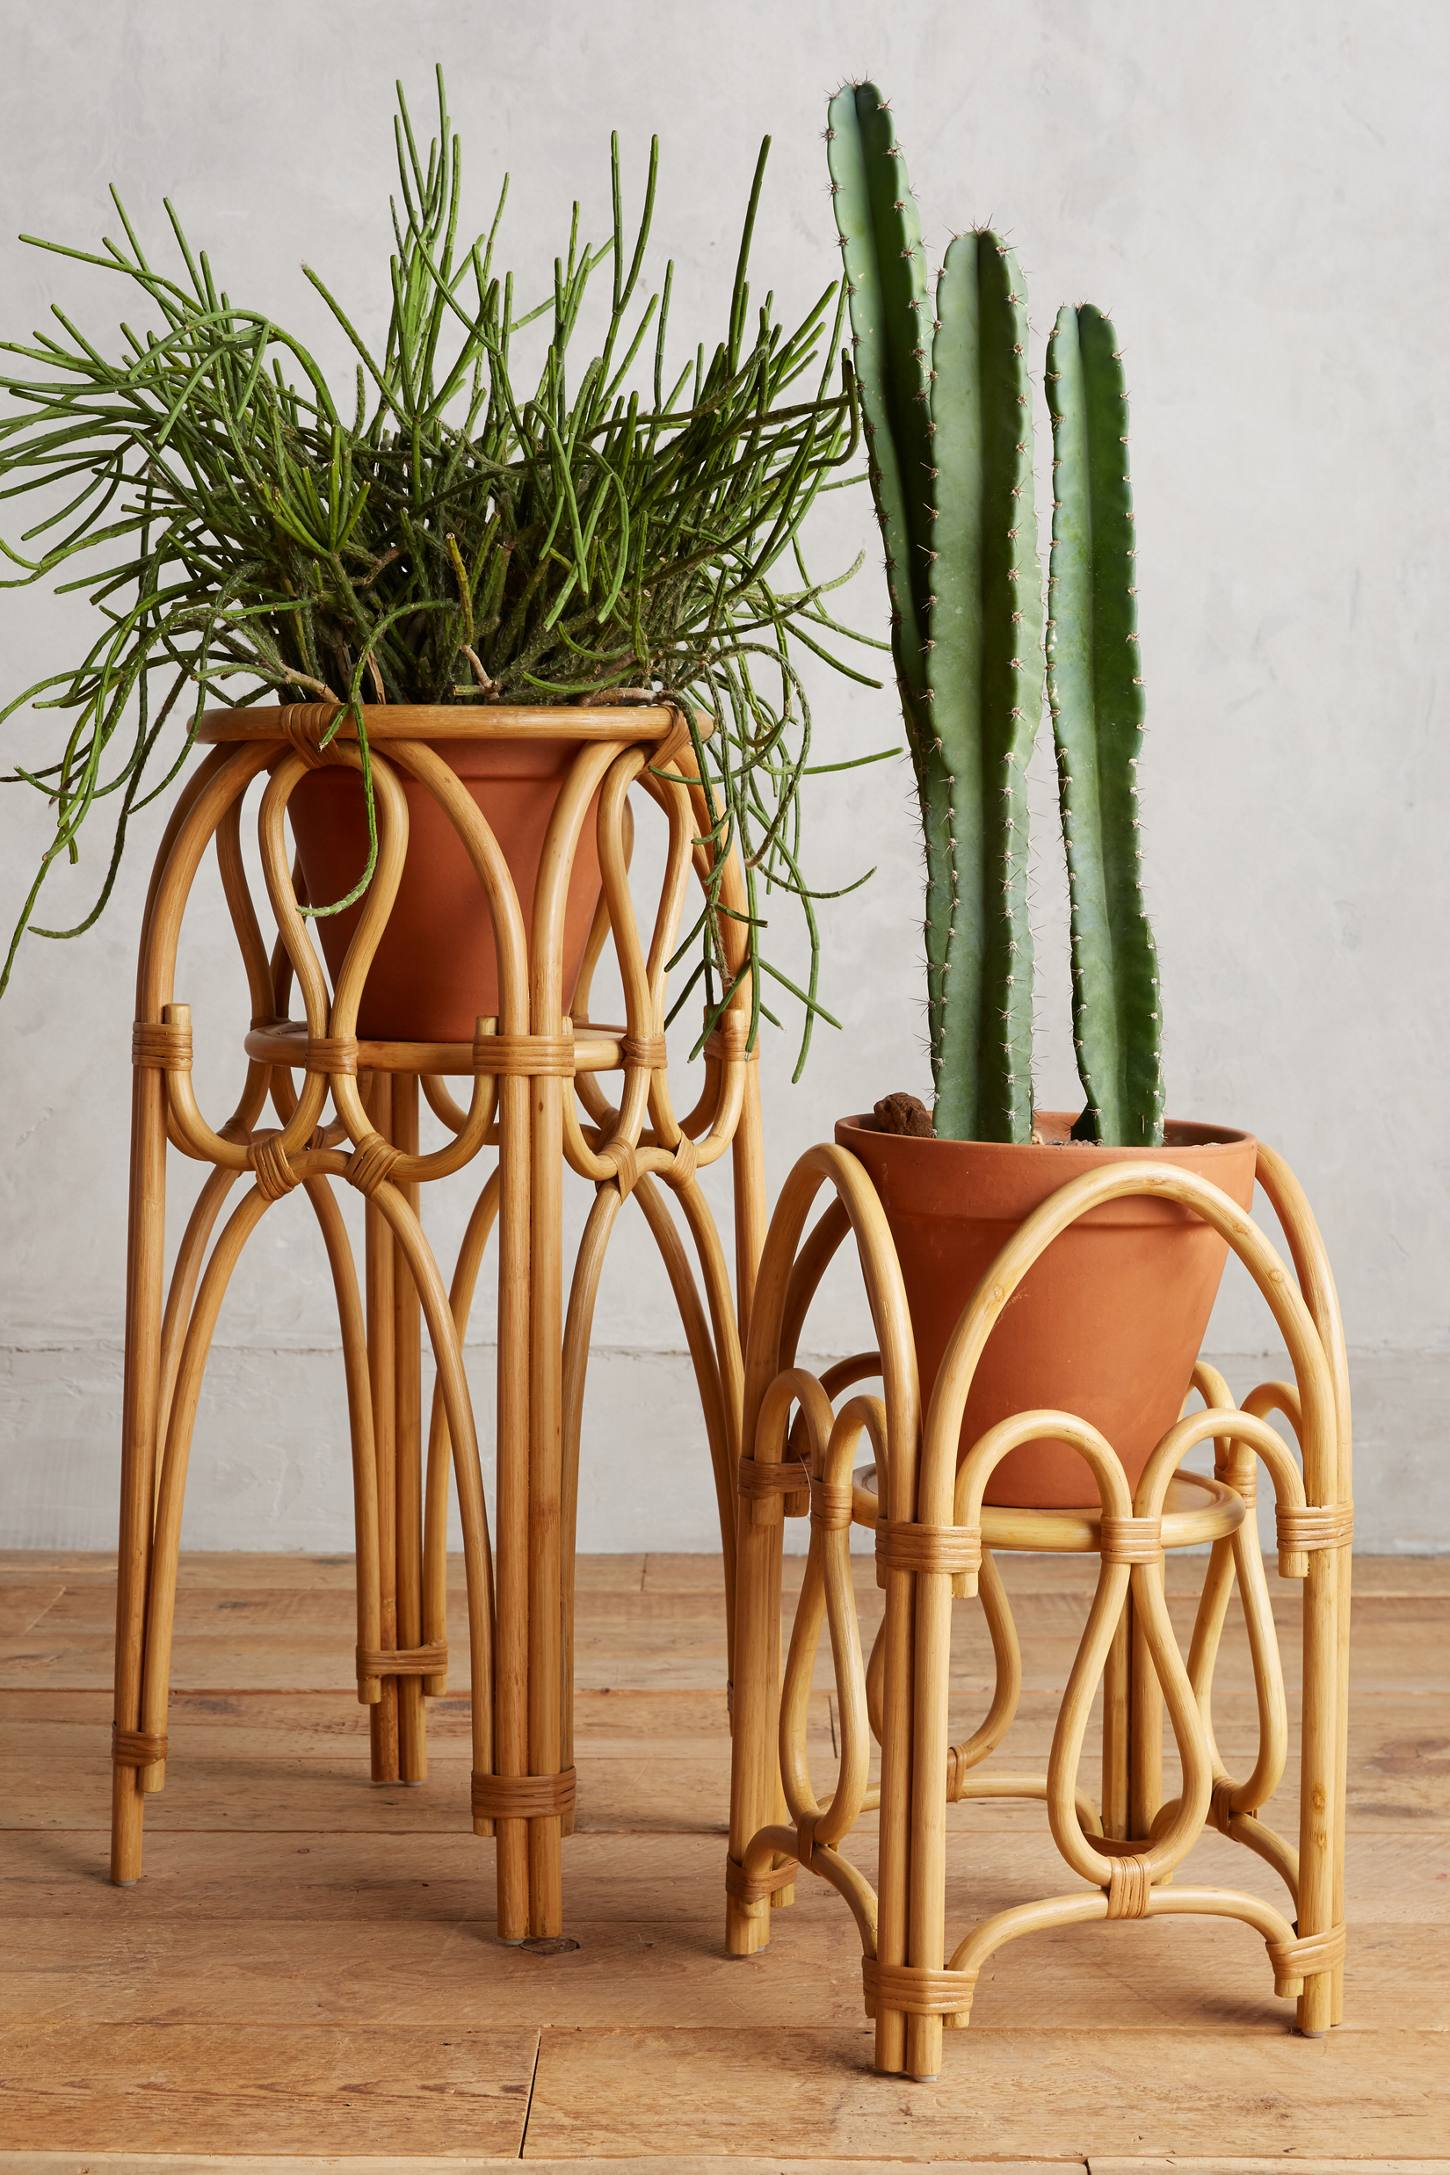 Slide View: 1: Rattan Plant Stand